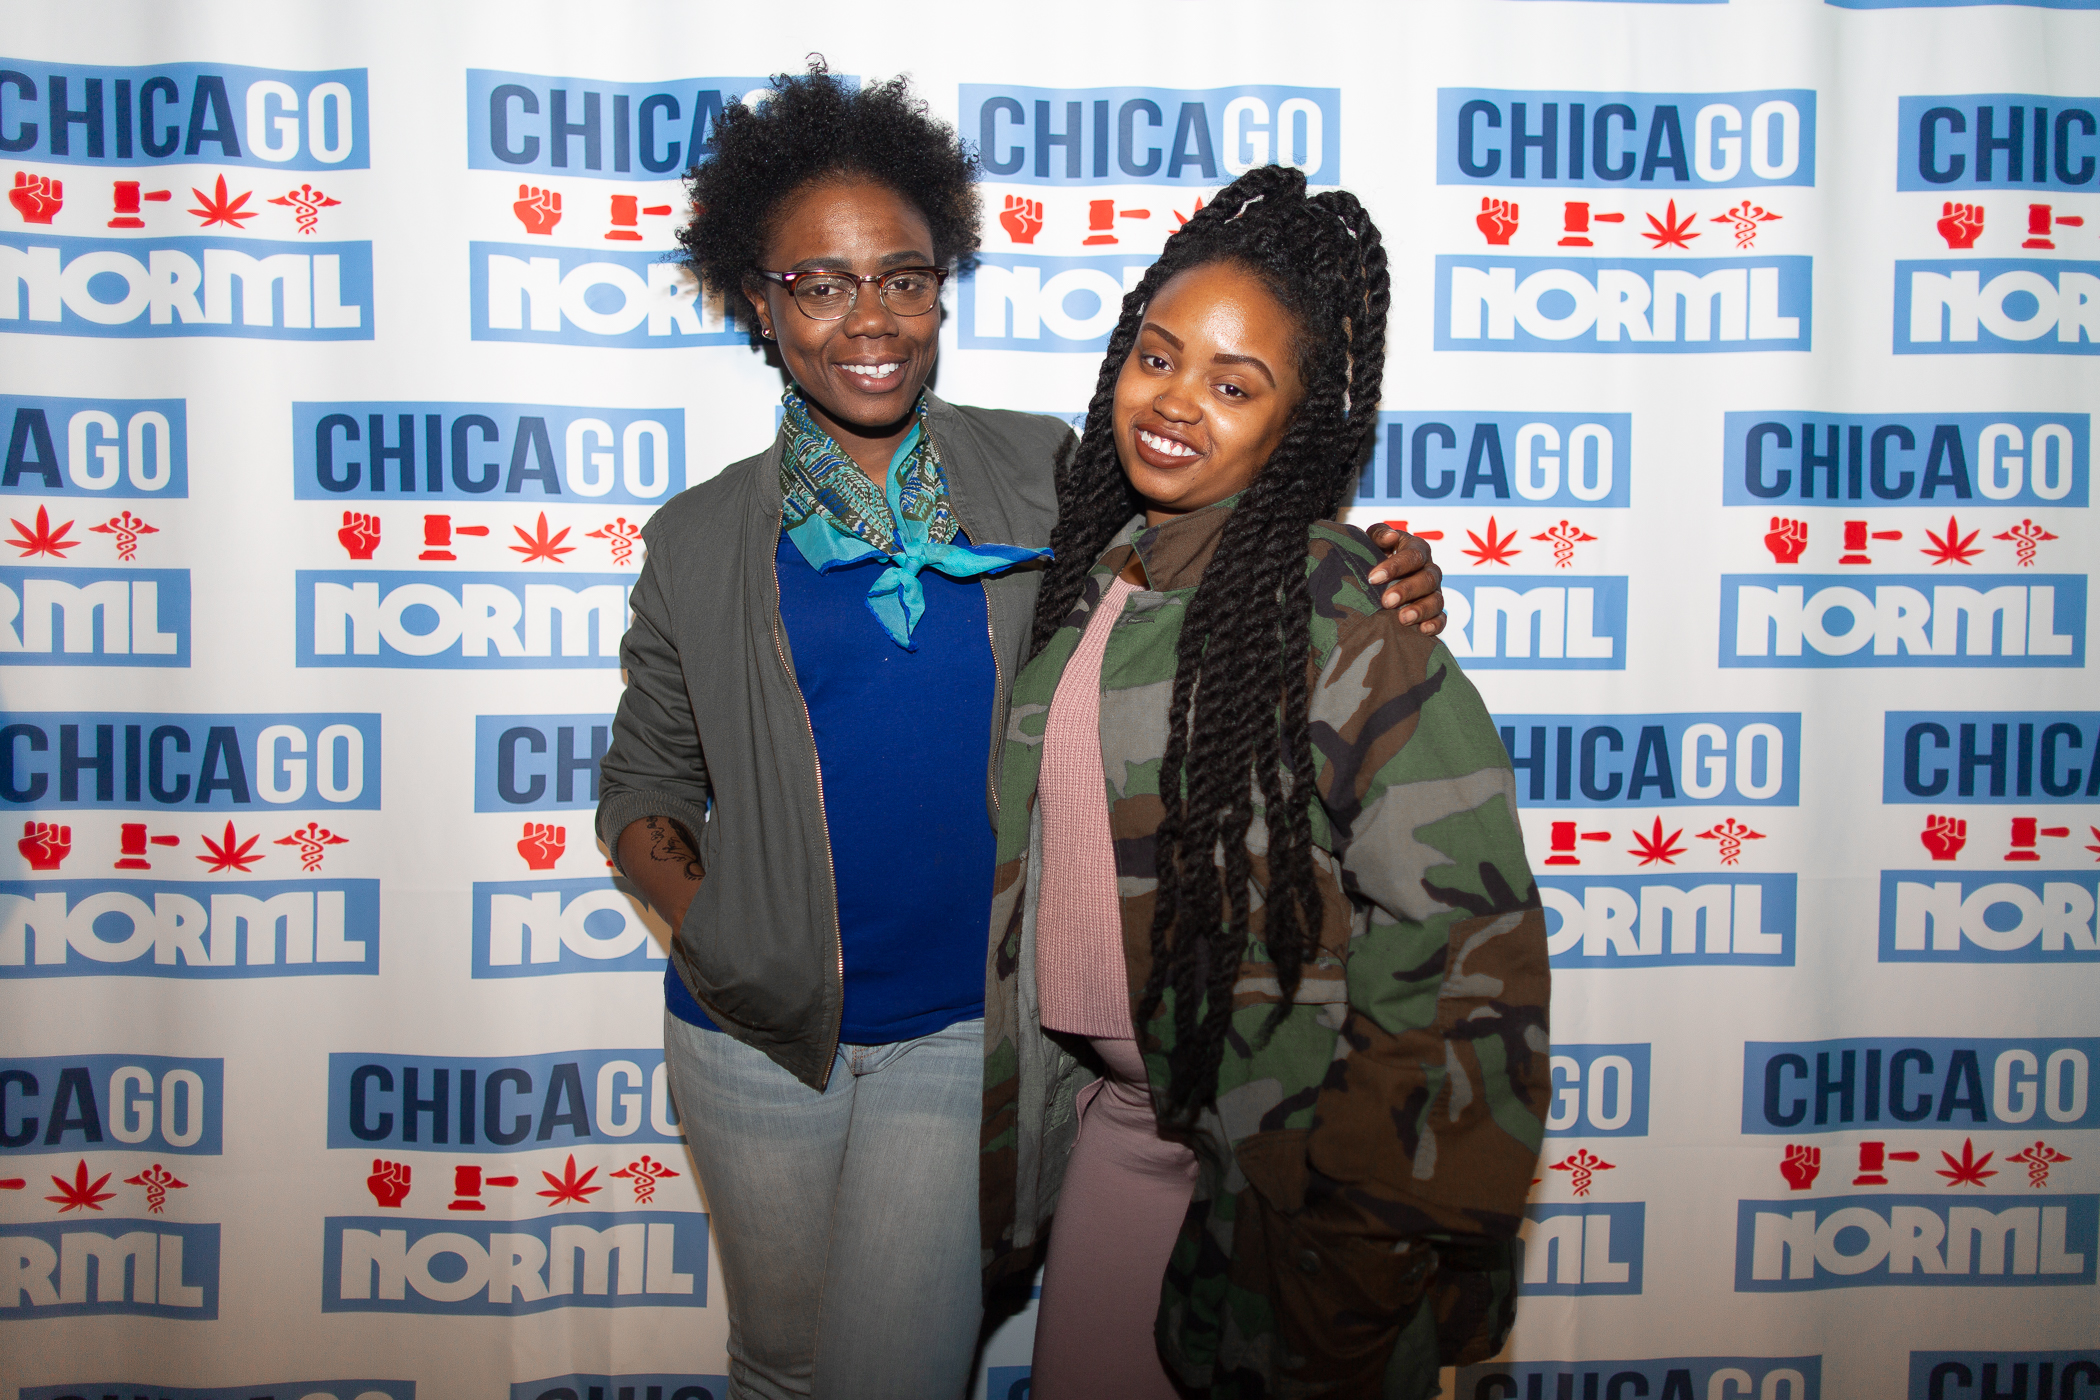 Copy of 20180420 - Chicago Norml-67.jpg